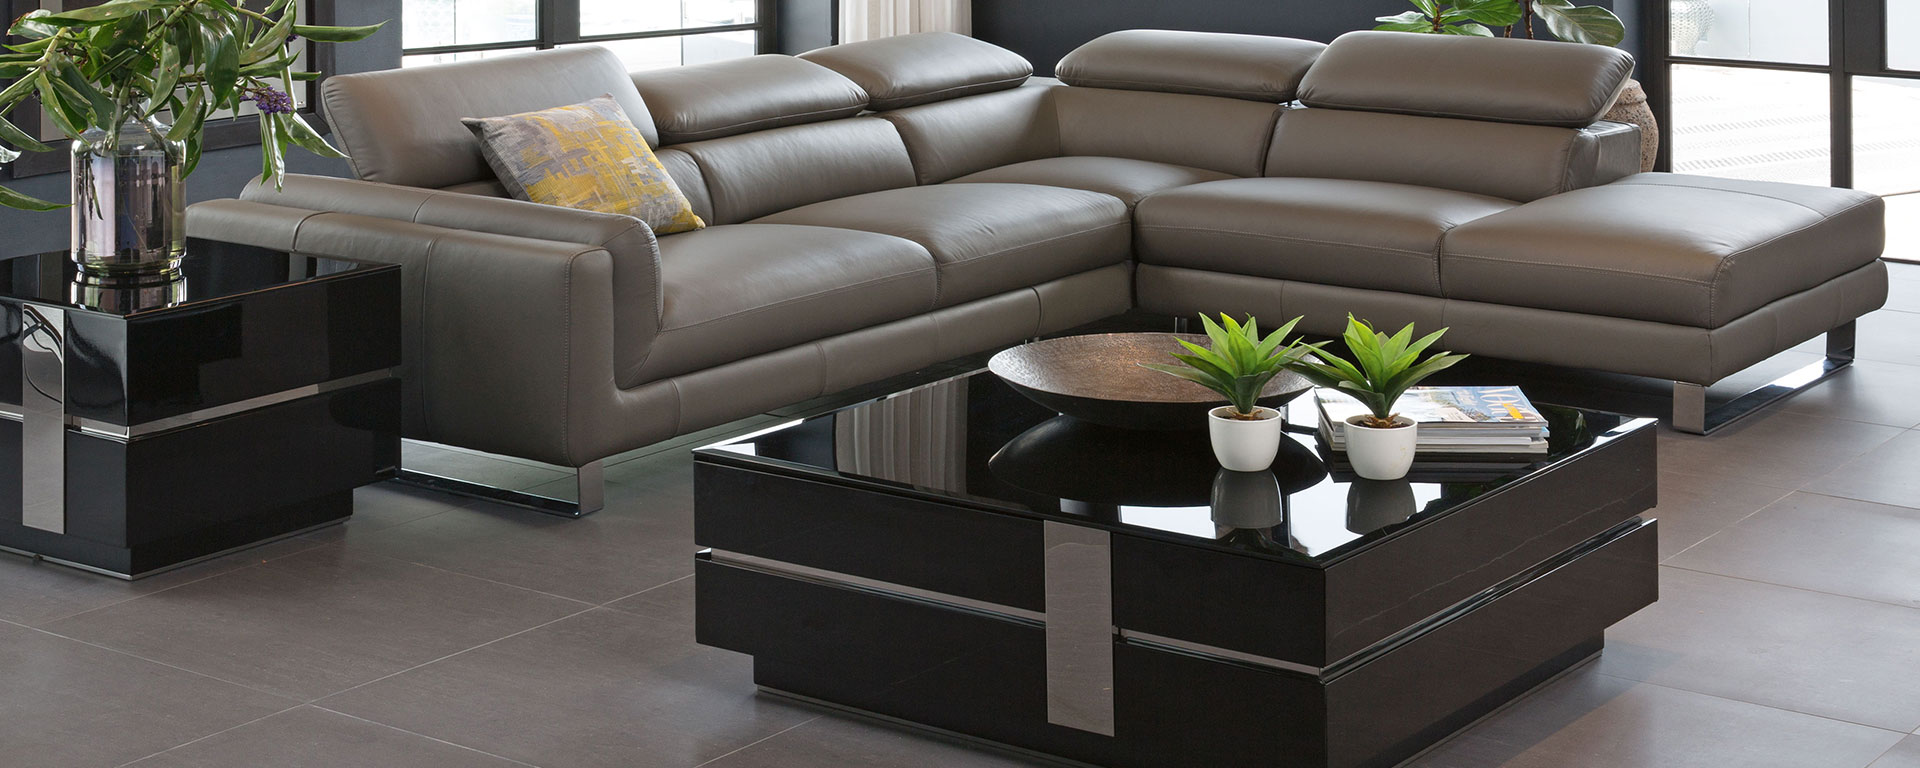 new living room furniture. Style Your Living Room With New-Season Furniture New R